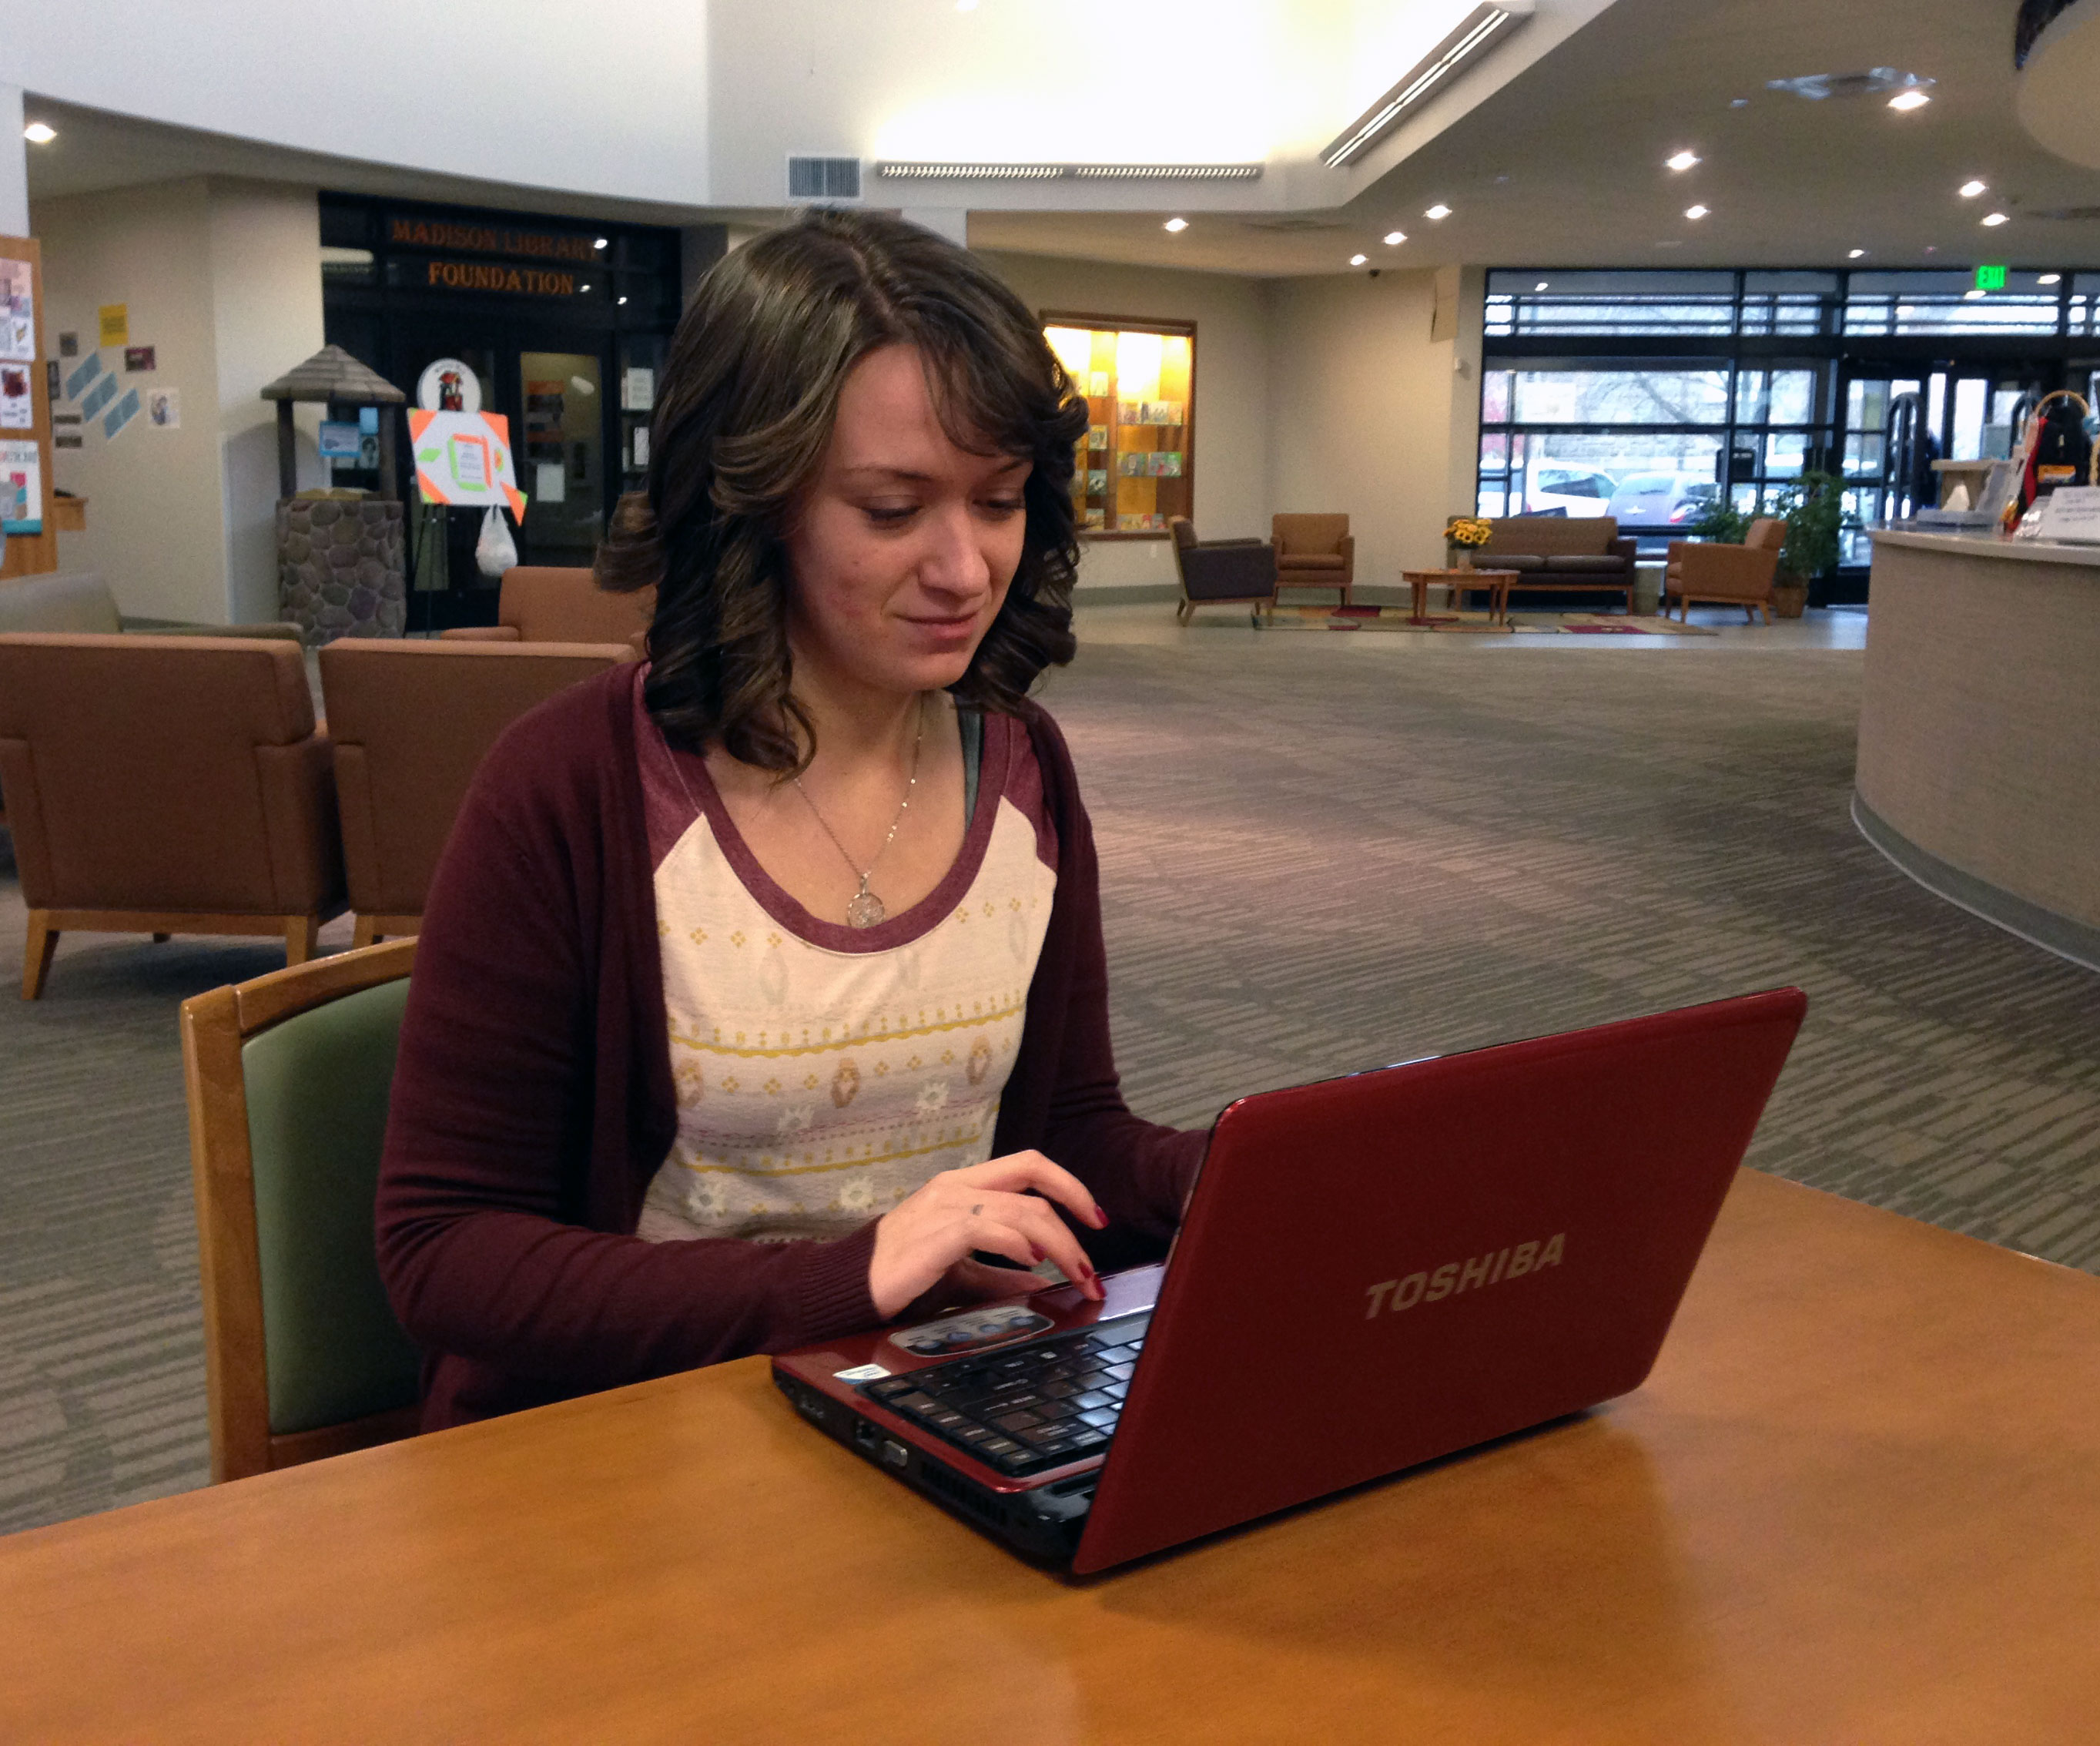 Free Wi-Fi at the Madison Library District